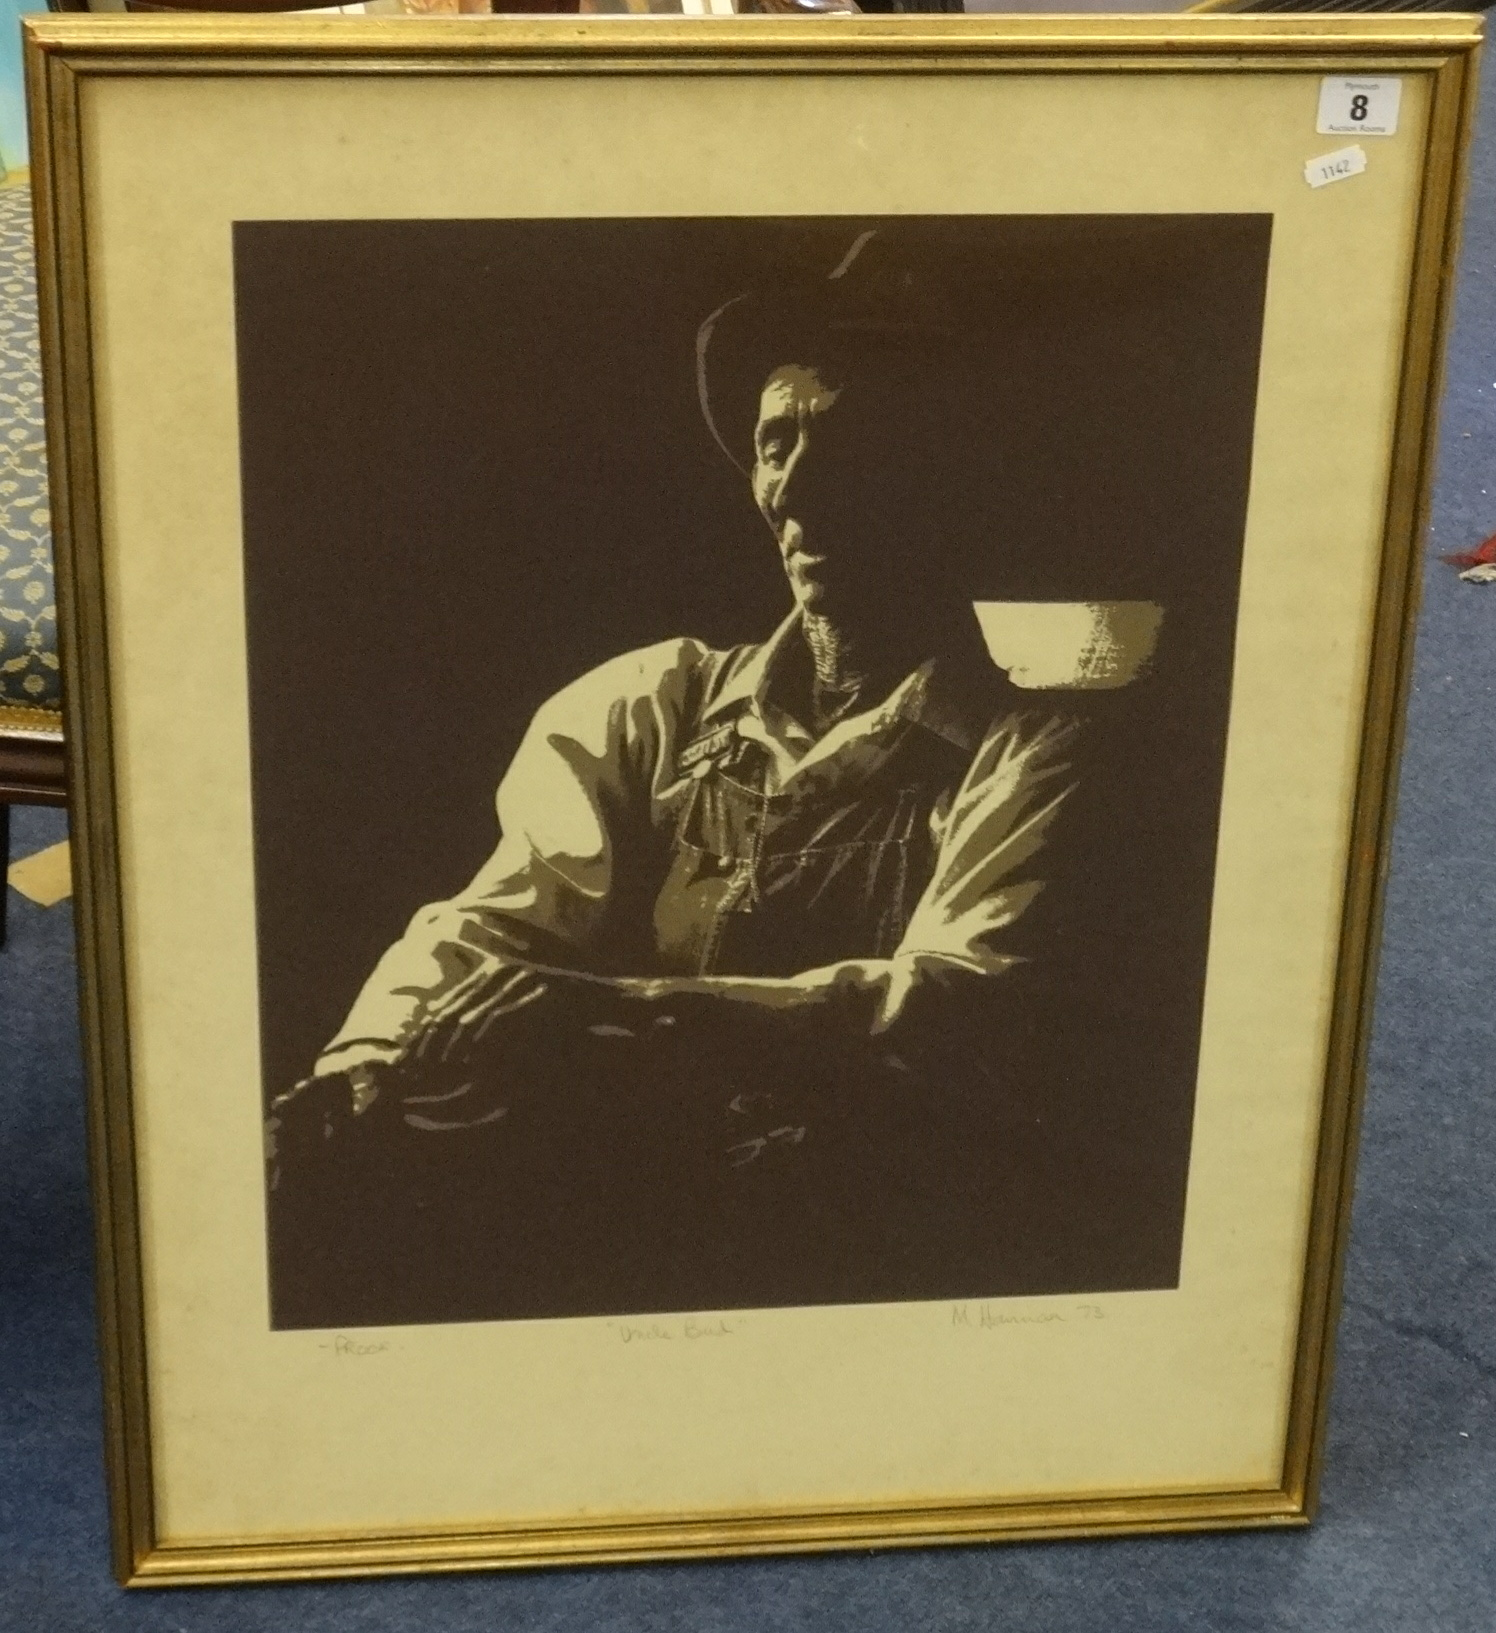 Lot 8 - Michael Hannan, 'Uncle Bud', Artist's proof 1973 with extensive biography on back, 49cm x 39cm.